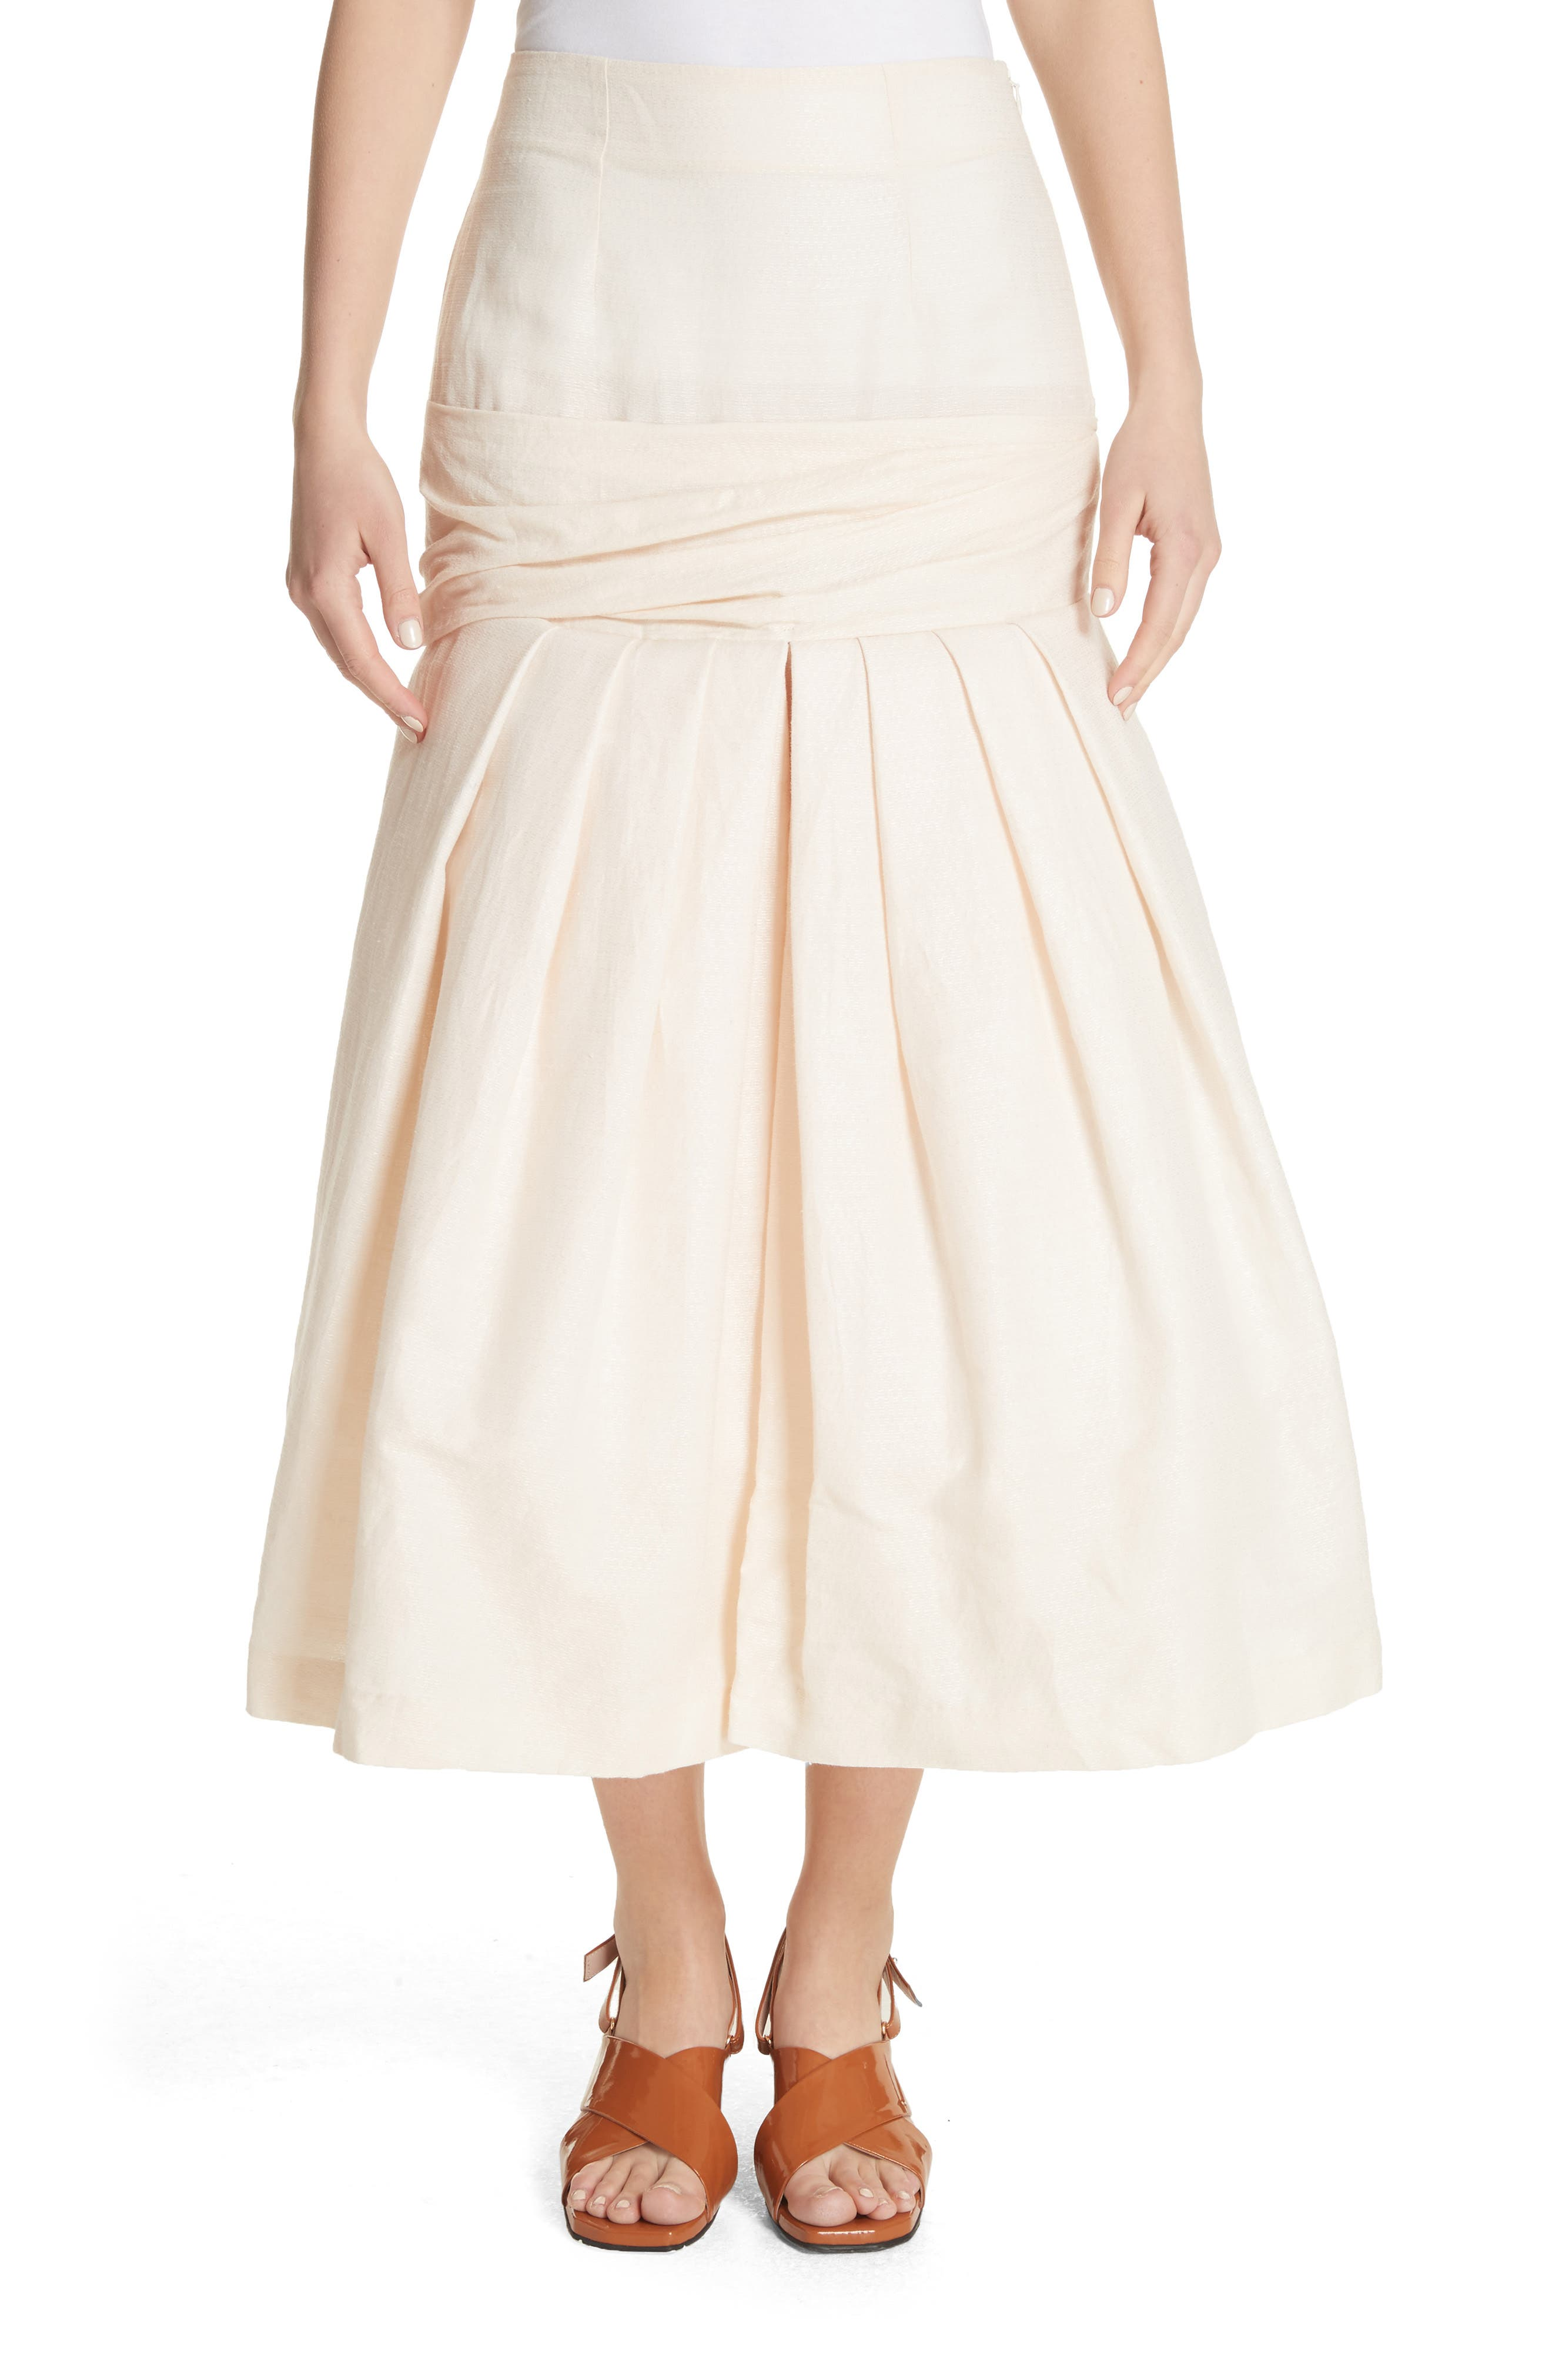 La Jupe Mamao Skirt,                         Main,                         color, 250